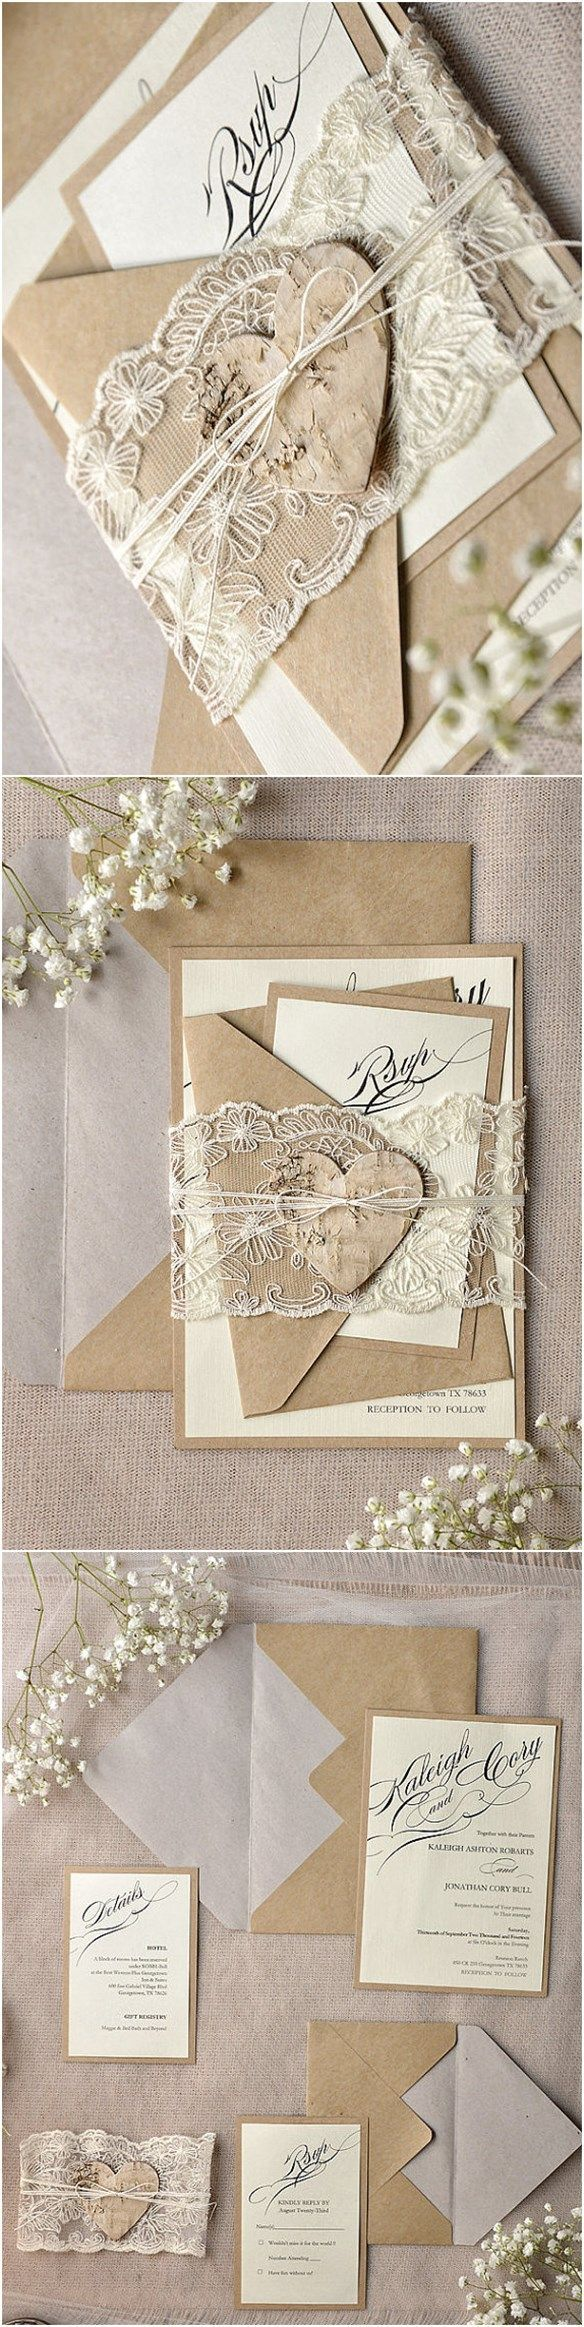 Beautifully put together invitations that matches the lace of a wedding dress. #WeddingInspiration #TheJewelleryEditorLoves